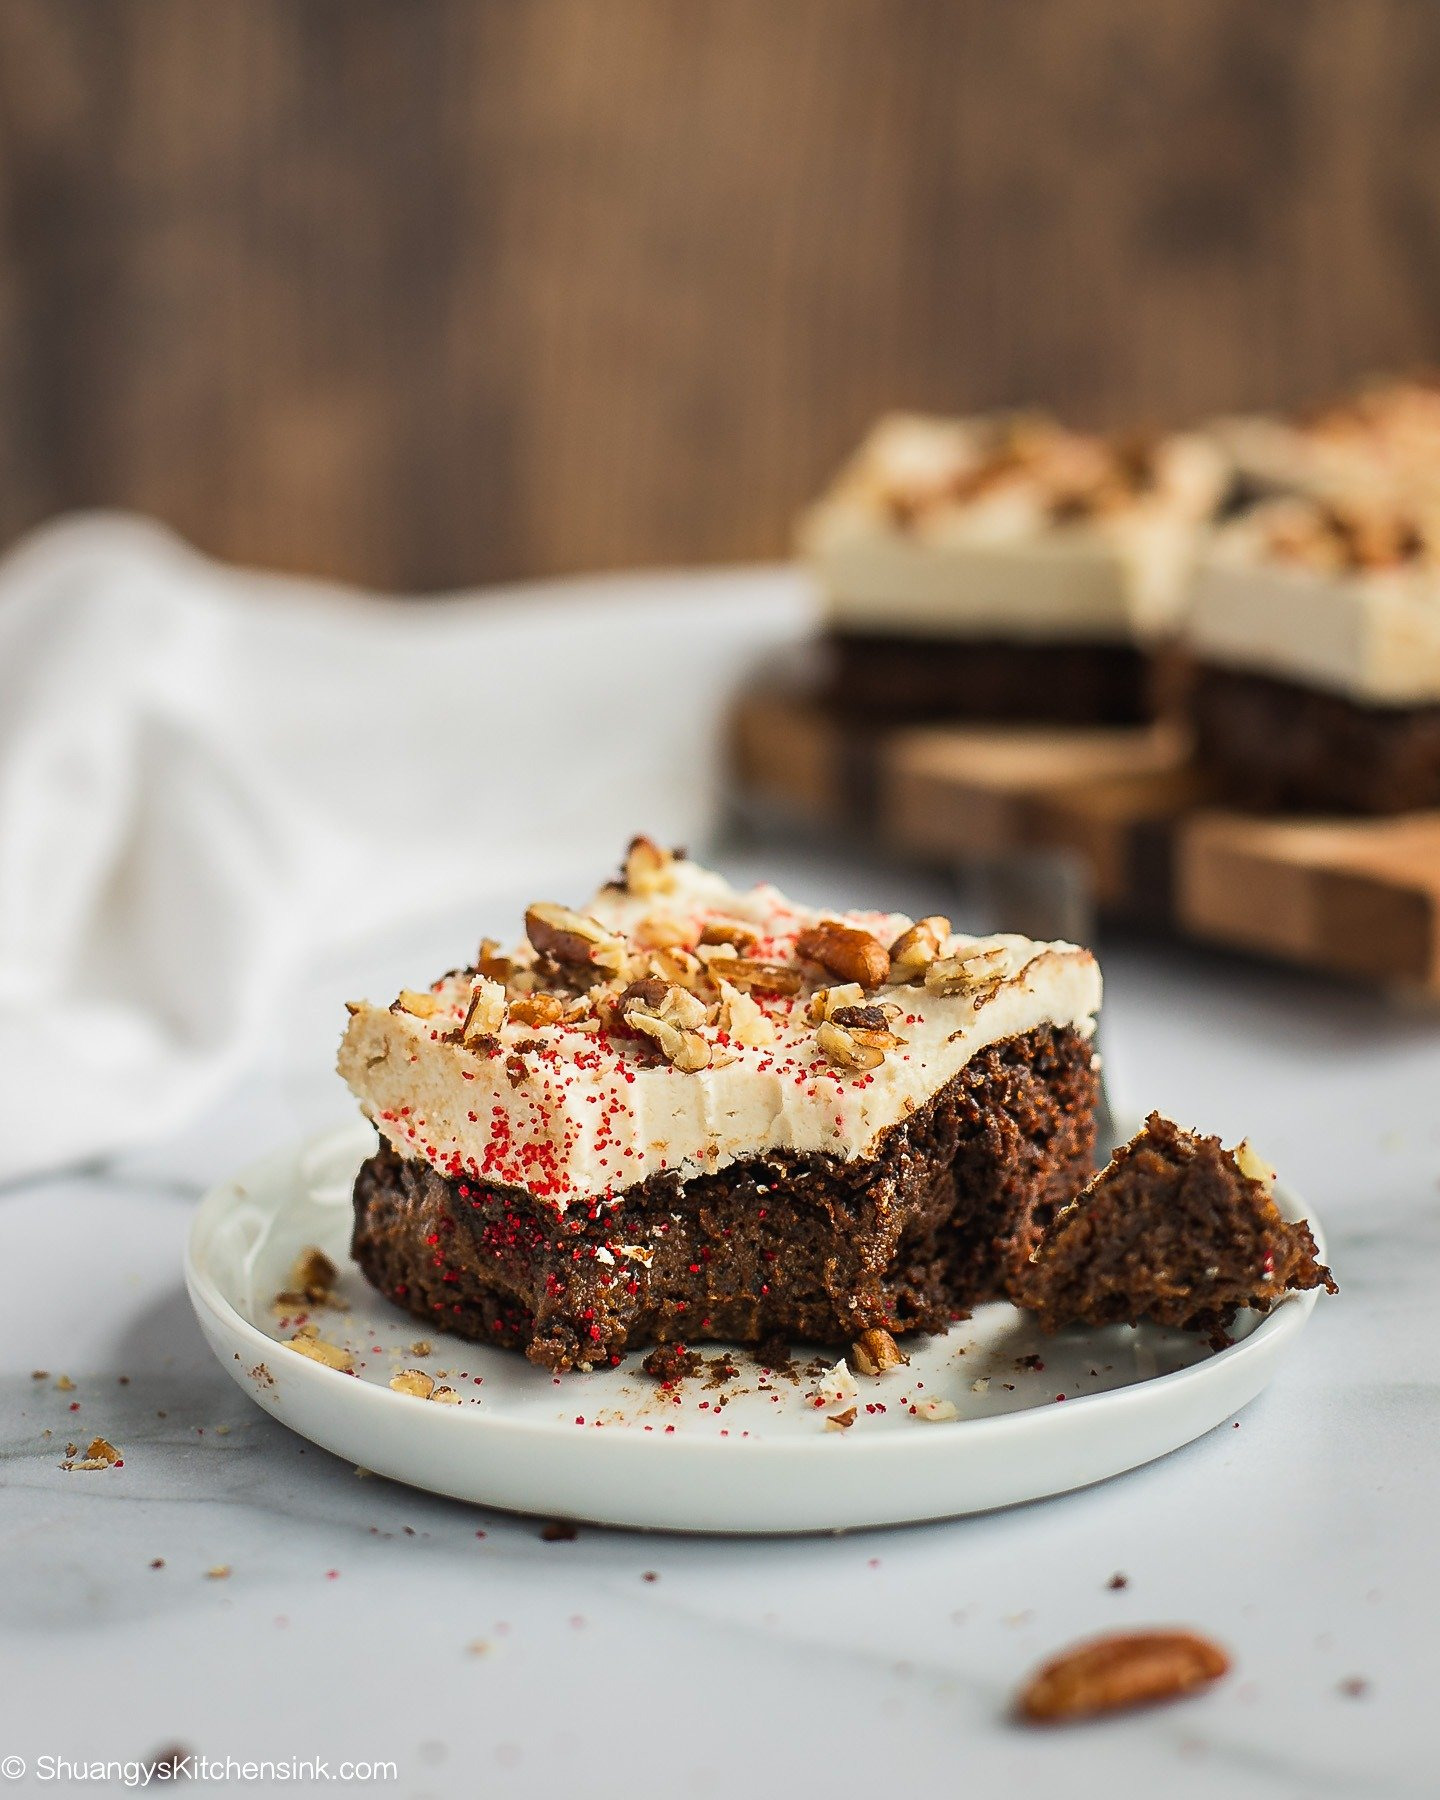 A piece of chocolate cake with cream cheese frosting with a bite in the middle. There are pecans on top.